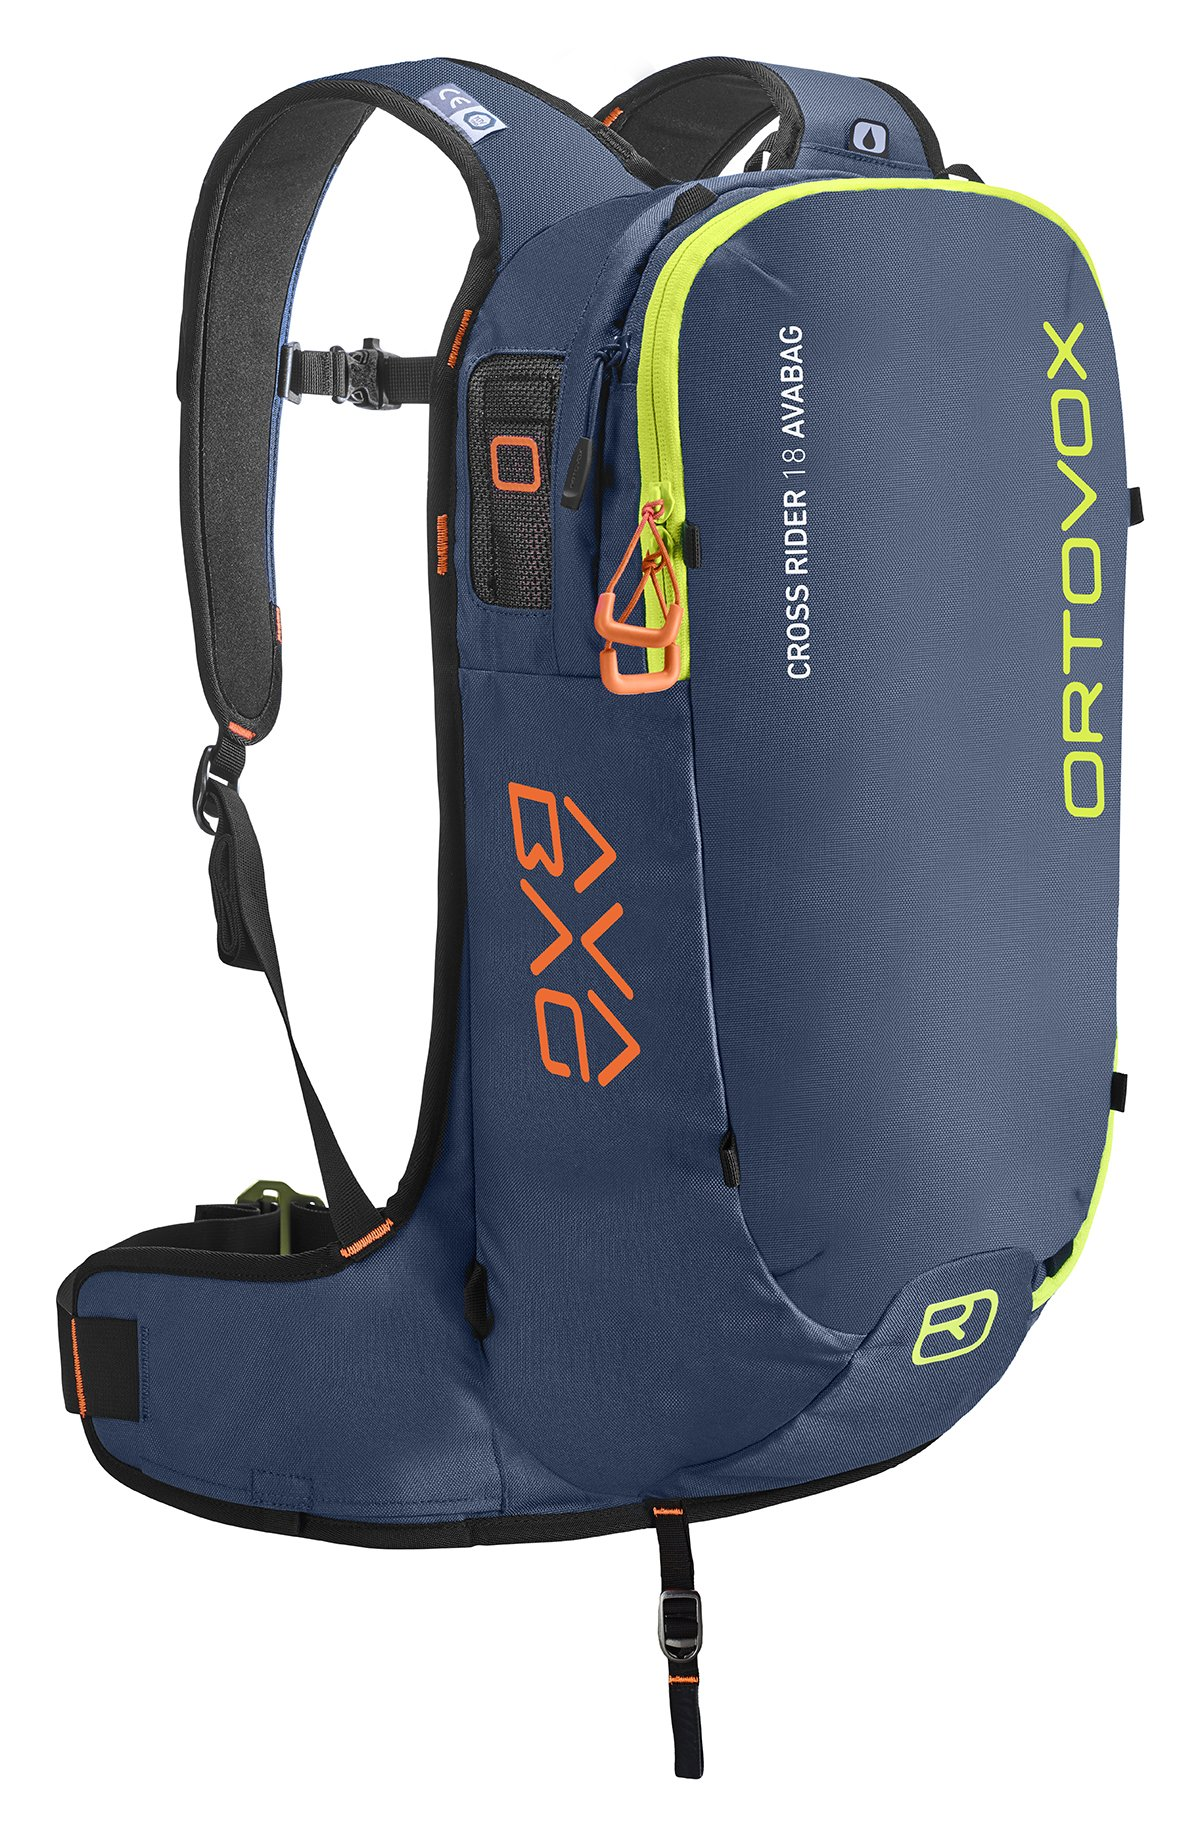 Front View - Non Inflated - Night Blue - Ortovox Cross Rider 18 Avabag Backpack